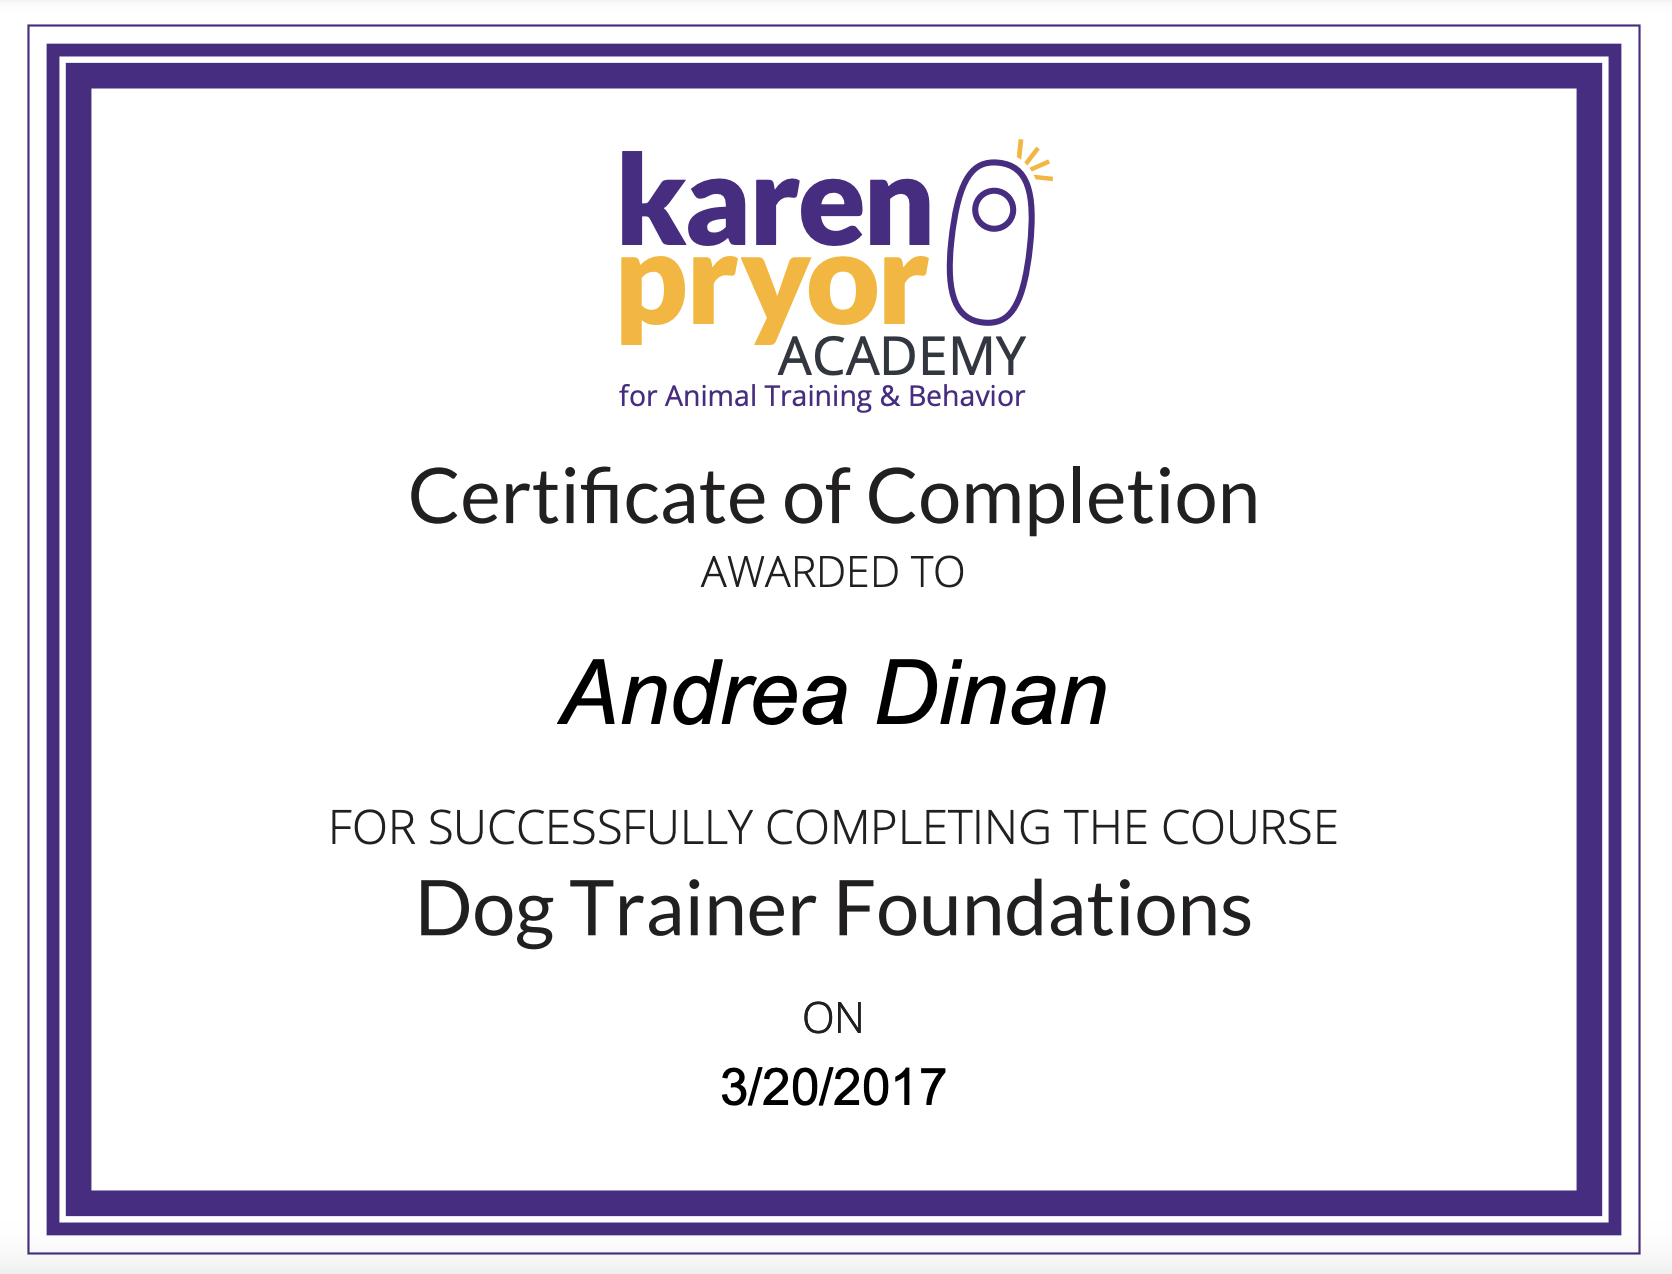 Dog Trainer Foundations - Andrea Dinan